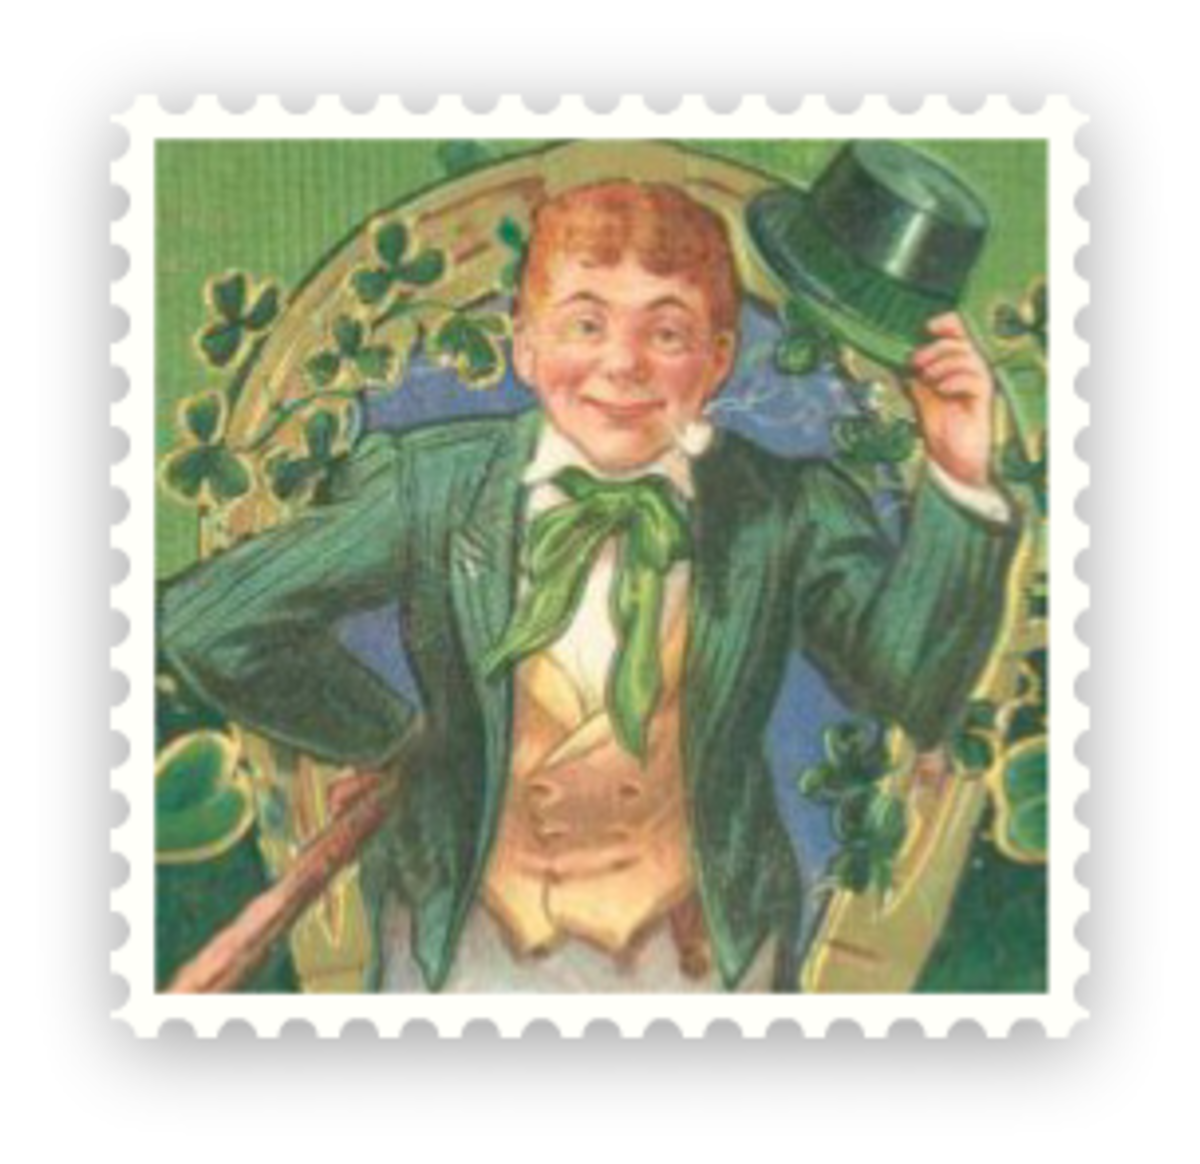 Free vintage St. Patrick's Day clip art -- leprechaun with green top hat